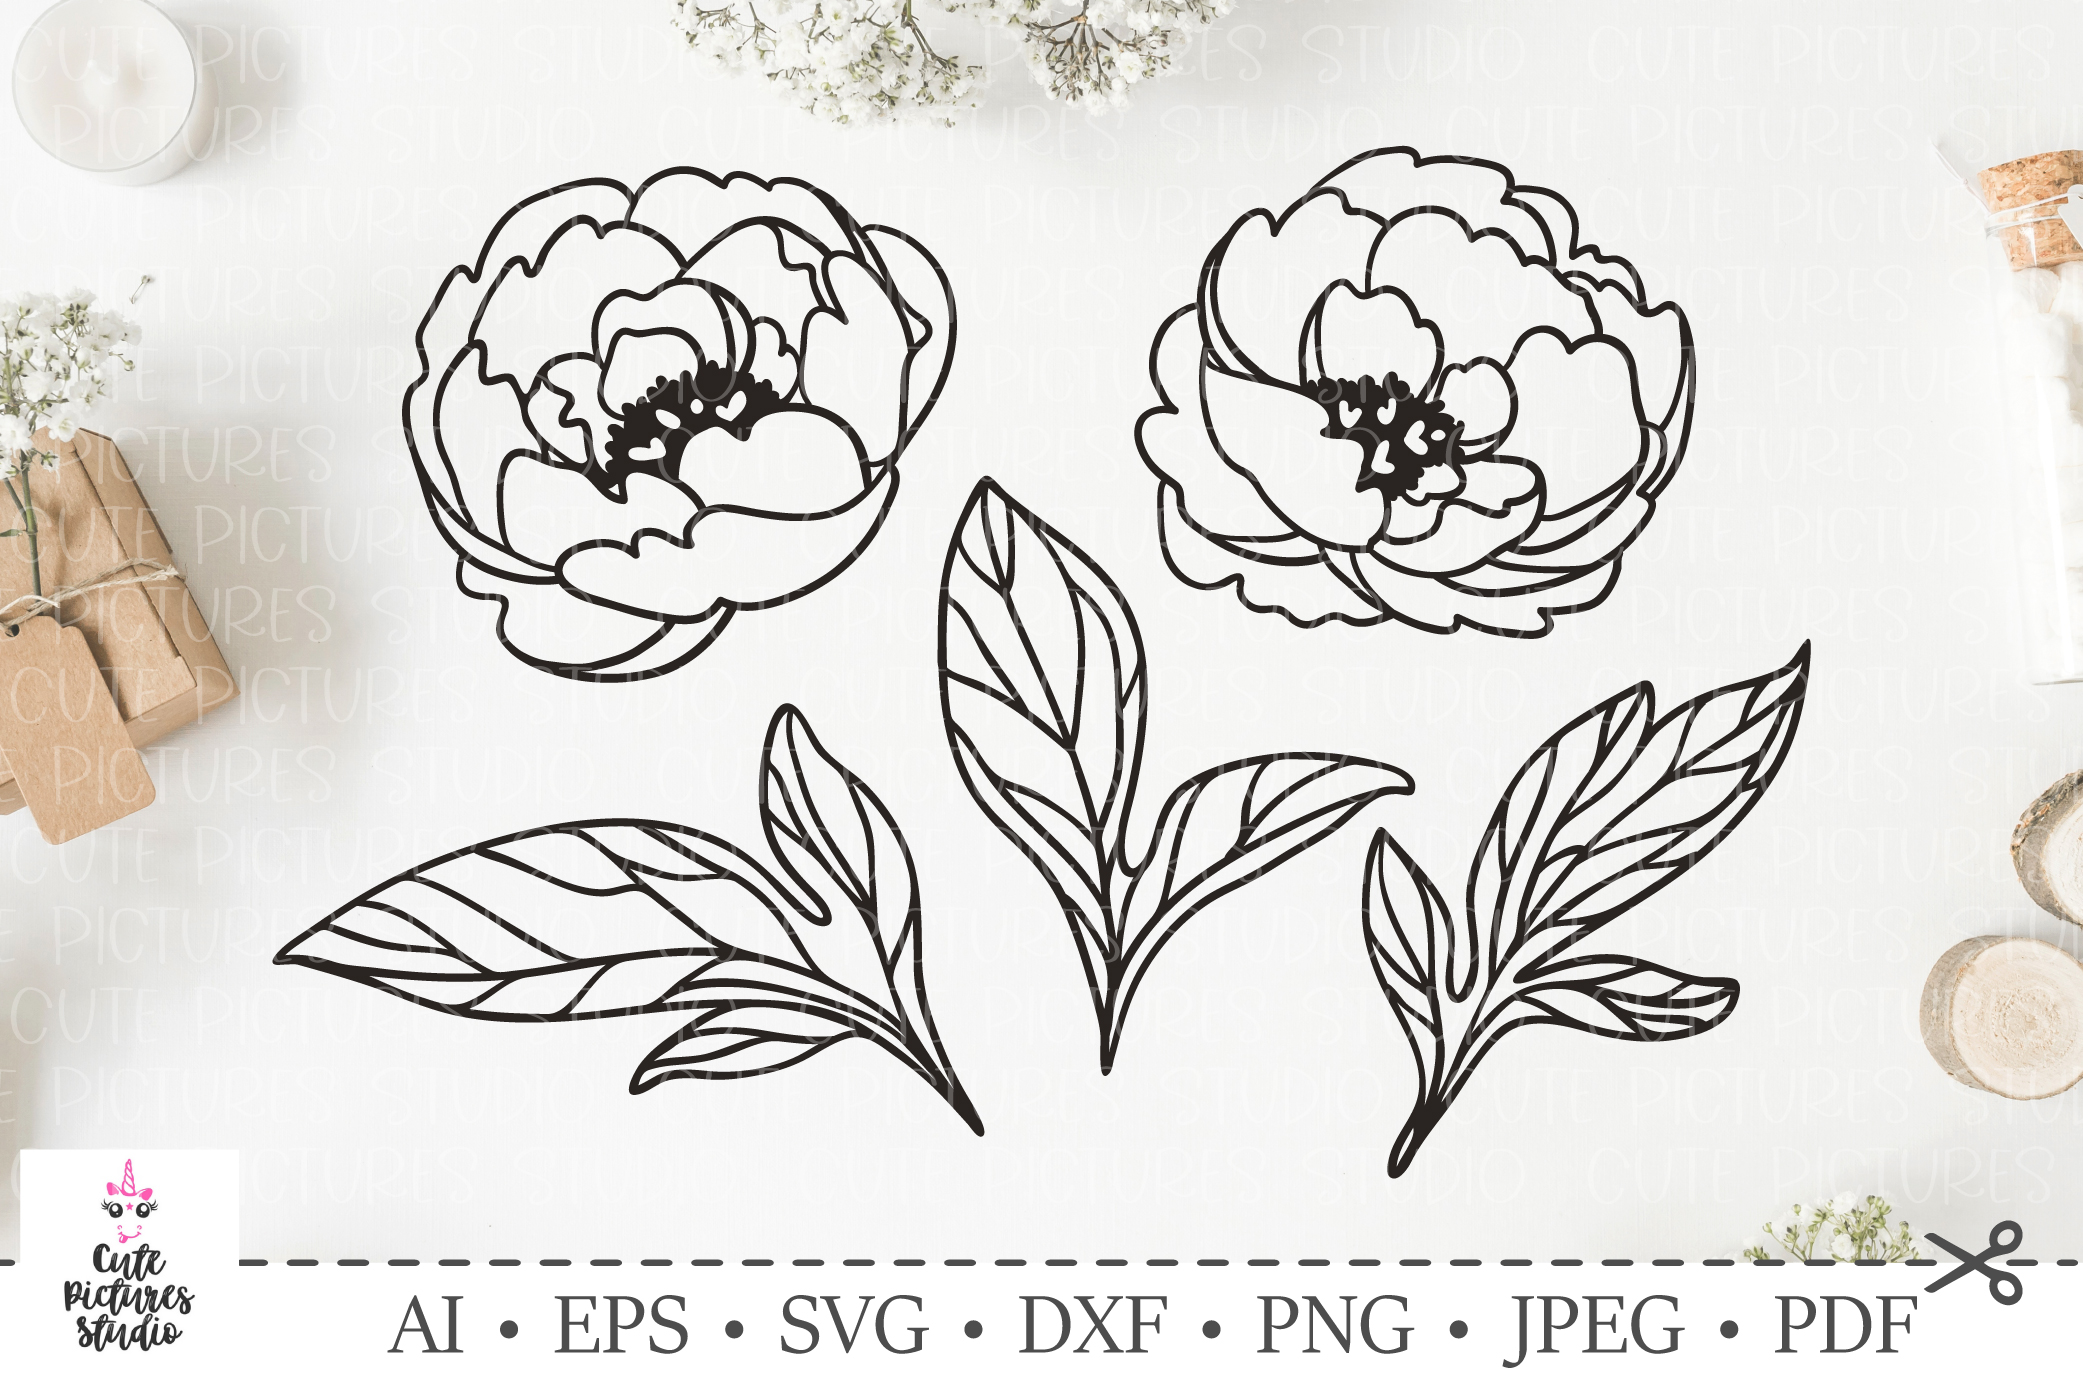 Graceful peony leavesf and flowers. SVG DXF cut file. example image 1